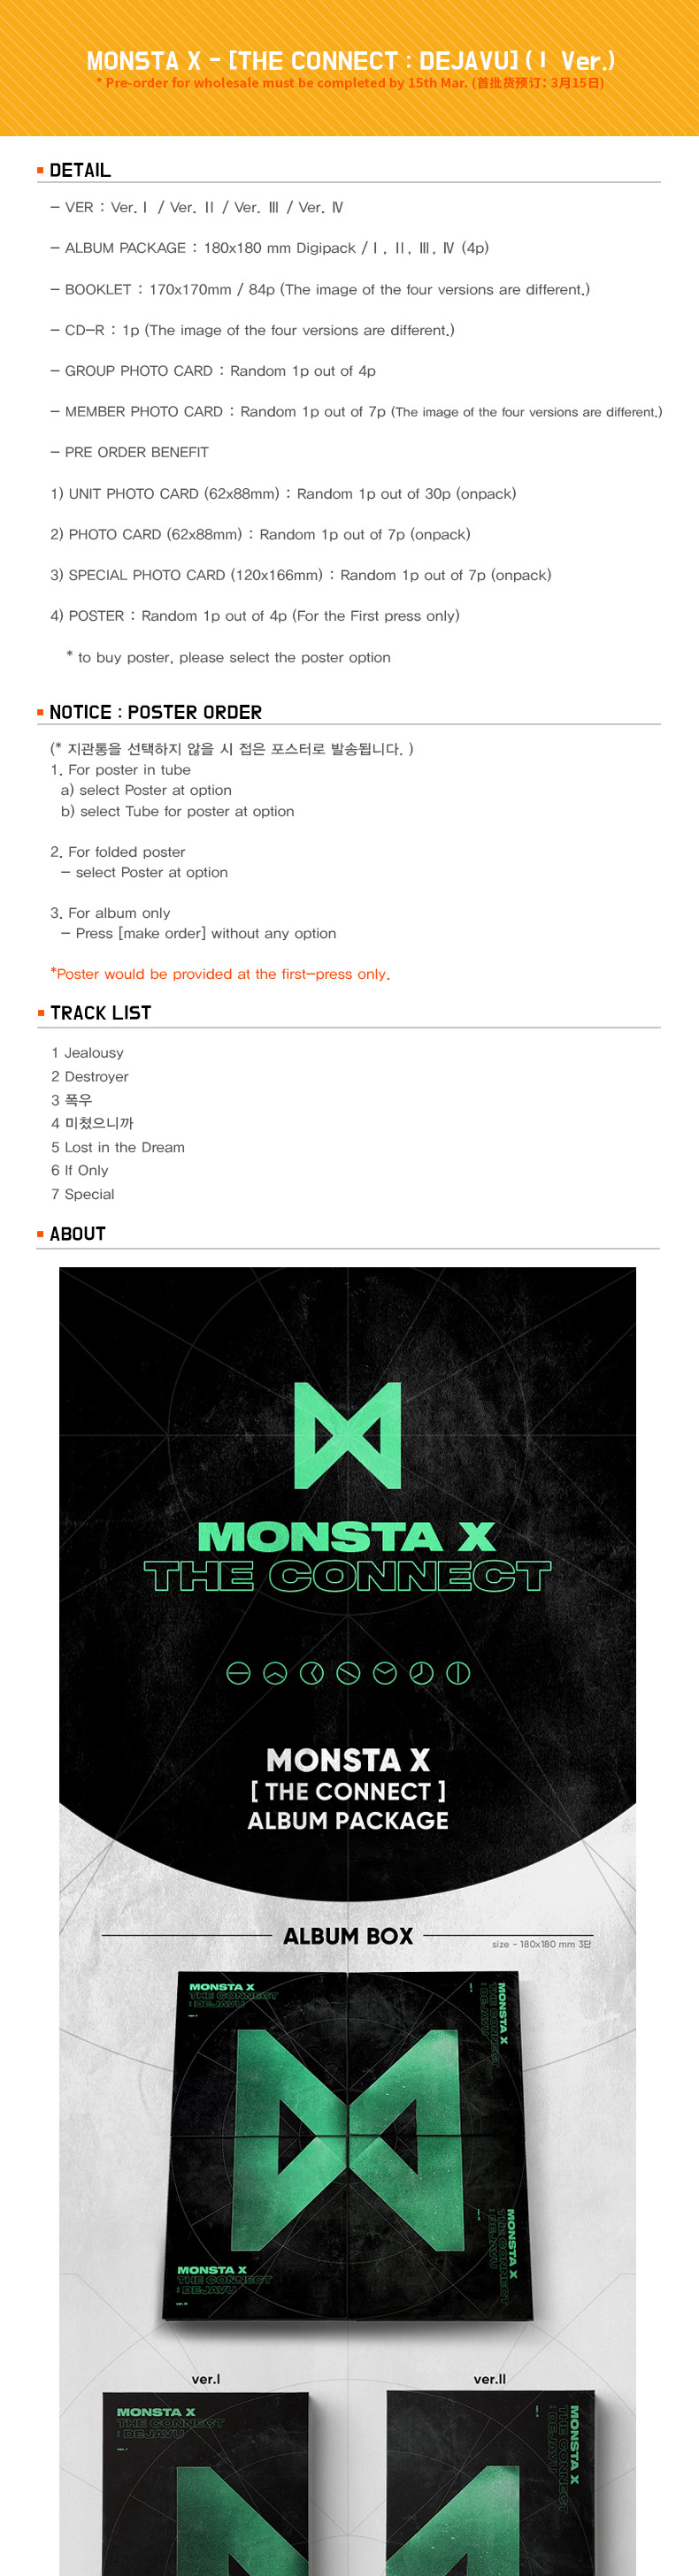 MONSTA X - [THE CONNECT : DEJAVU] (Ⅰ Ver.) (First press)